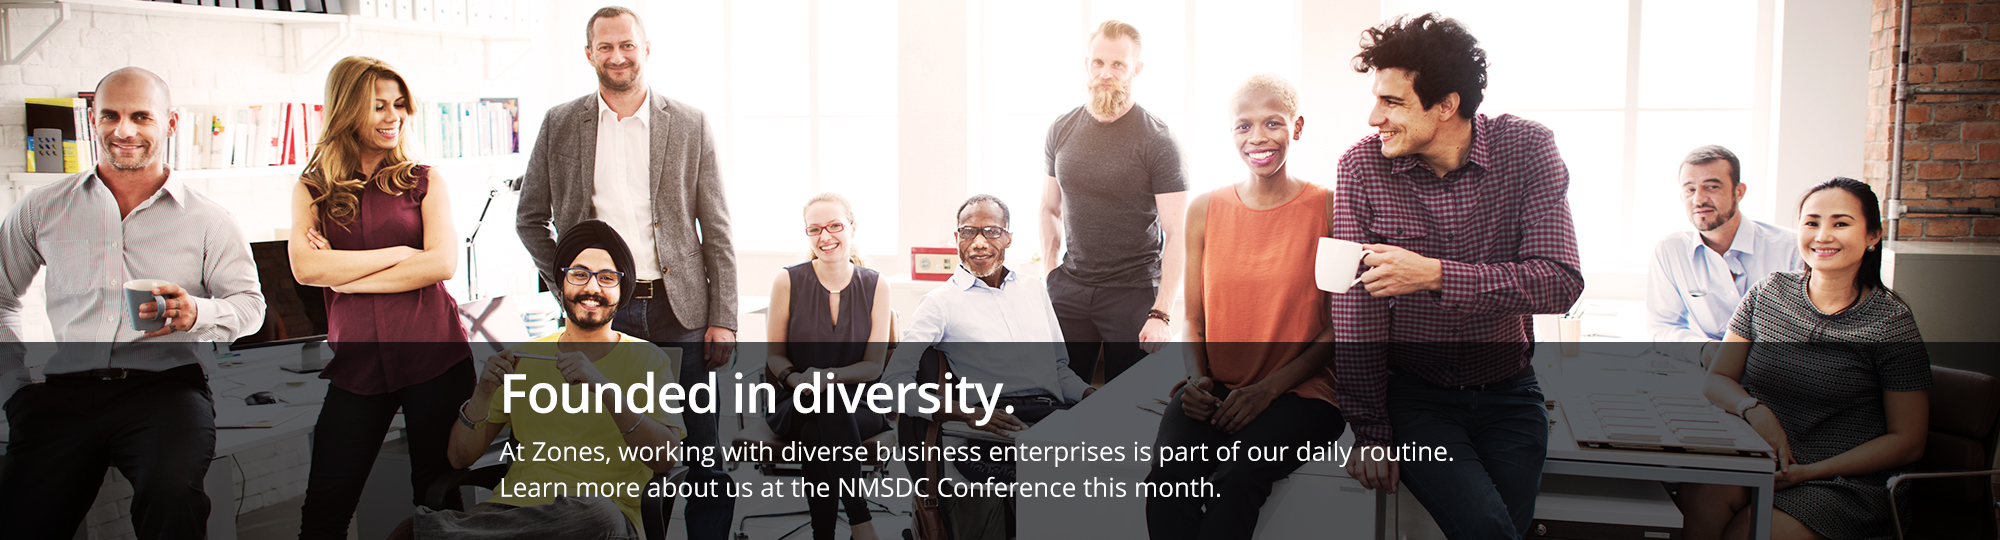 Founded in diversity. At Zones, working with diverse business enterprises is part of our daily routine. Learn more about us at the NMSDC Conference this month.